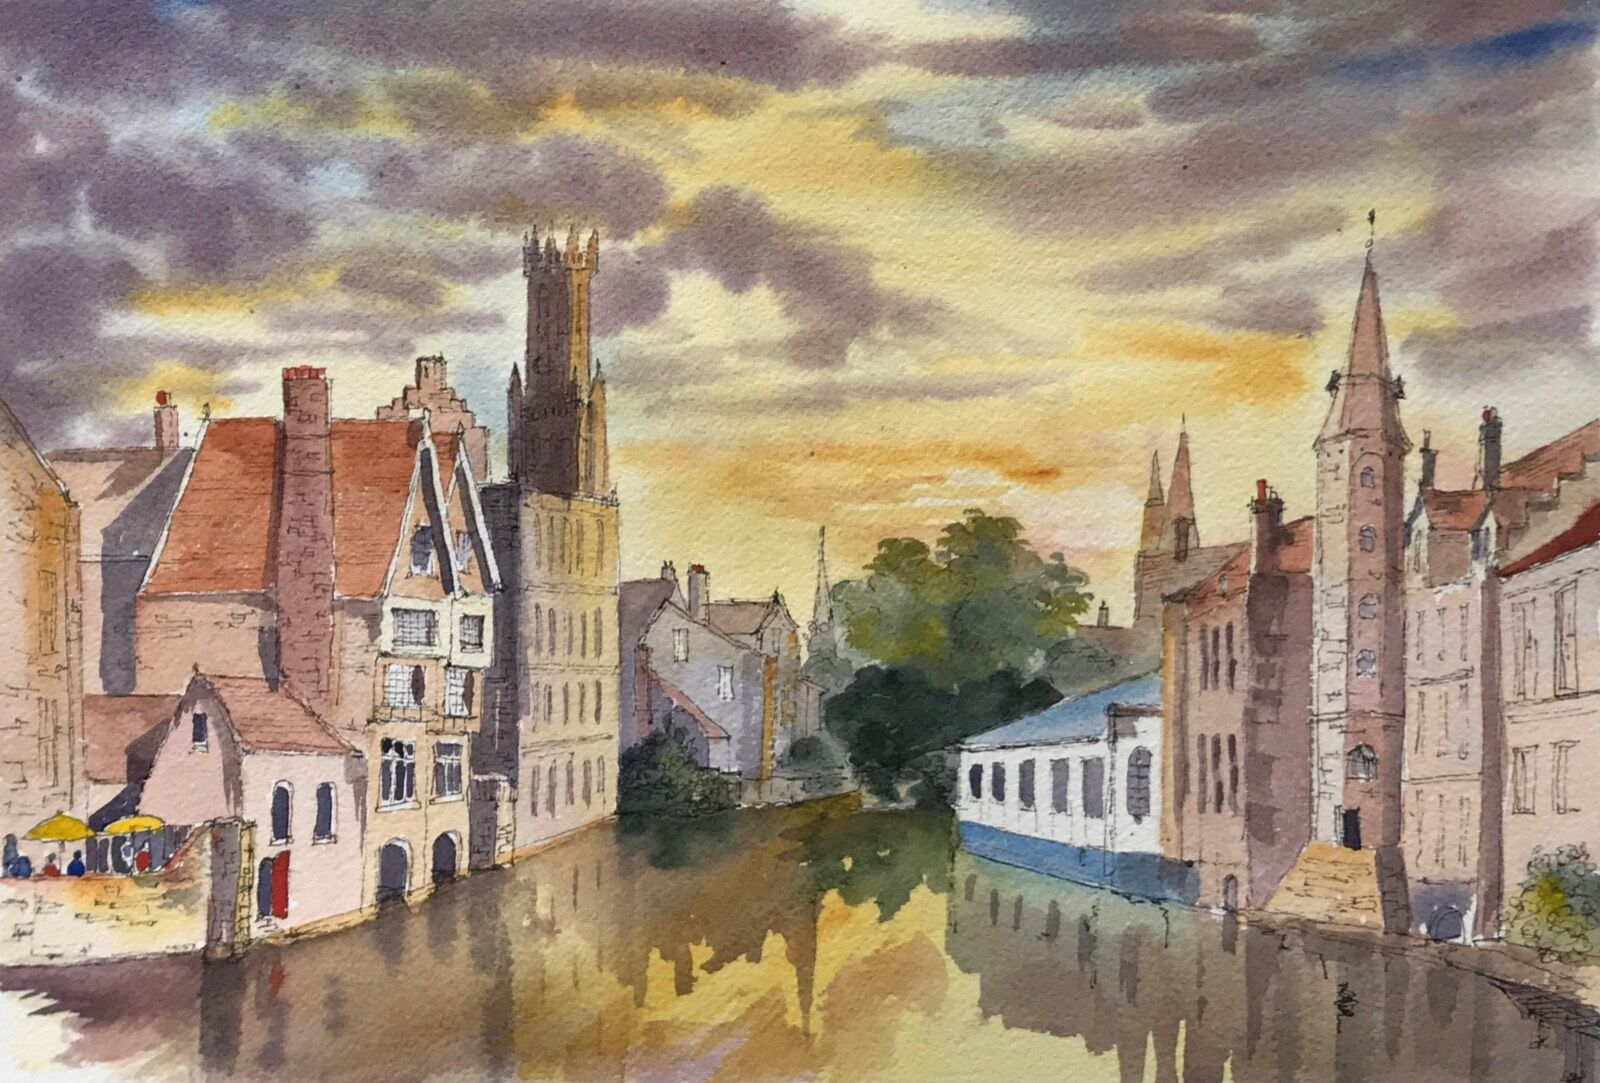 Evening calm on a Canal in Bruges